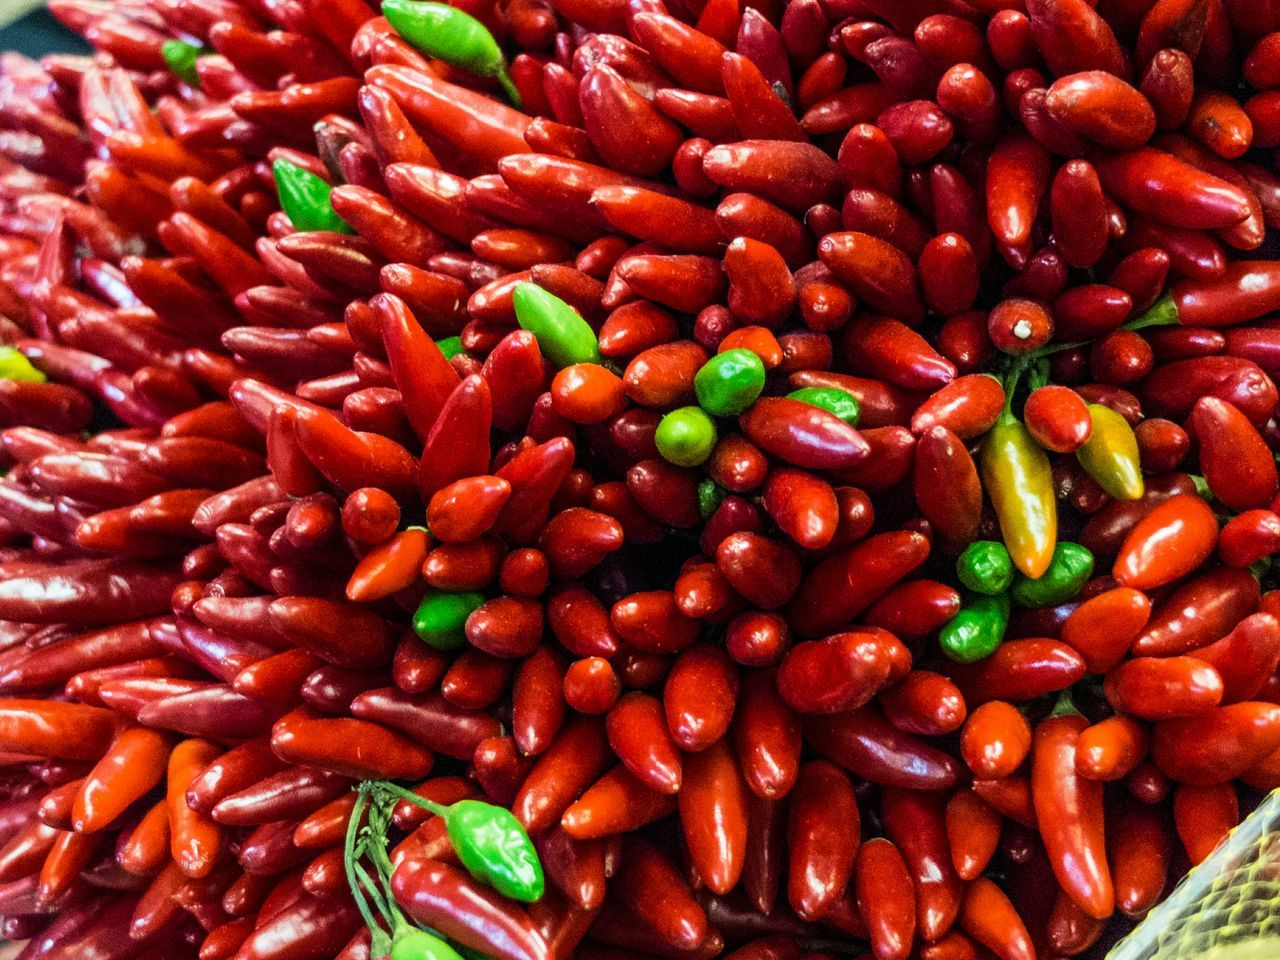 Red Freshness Food Healthy Eating High Angle View Food And Drink Spice No People Full Frame Backgrounds Close-up Ready-to-eat Day Outdoors Chili  Chilies Abundance Red Green Farm Produce Market Stall Spicey